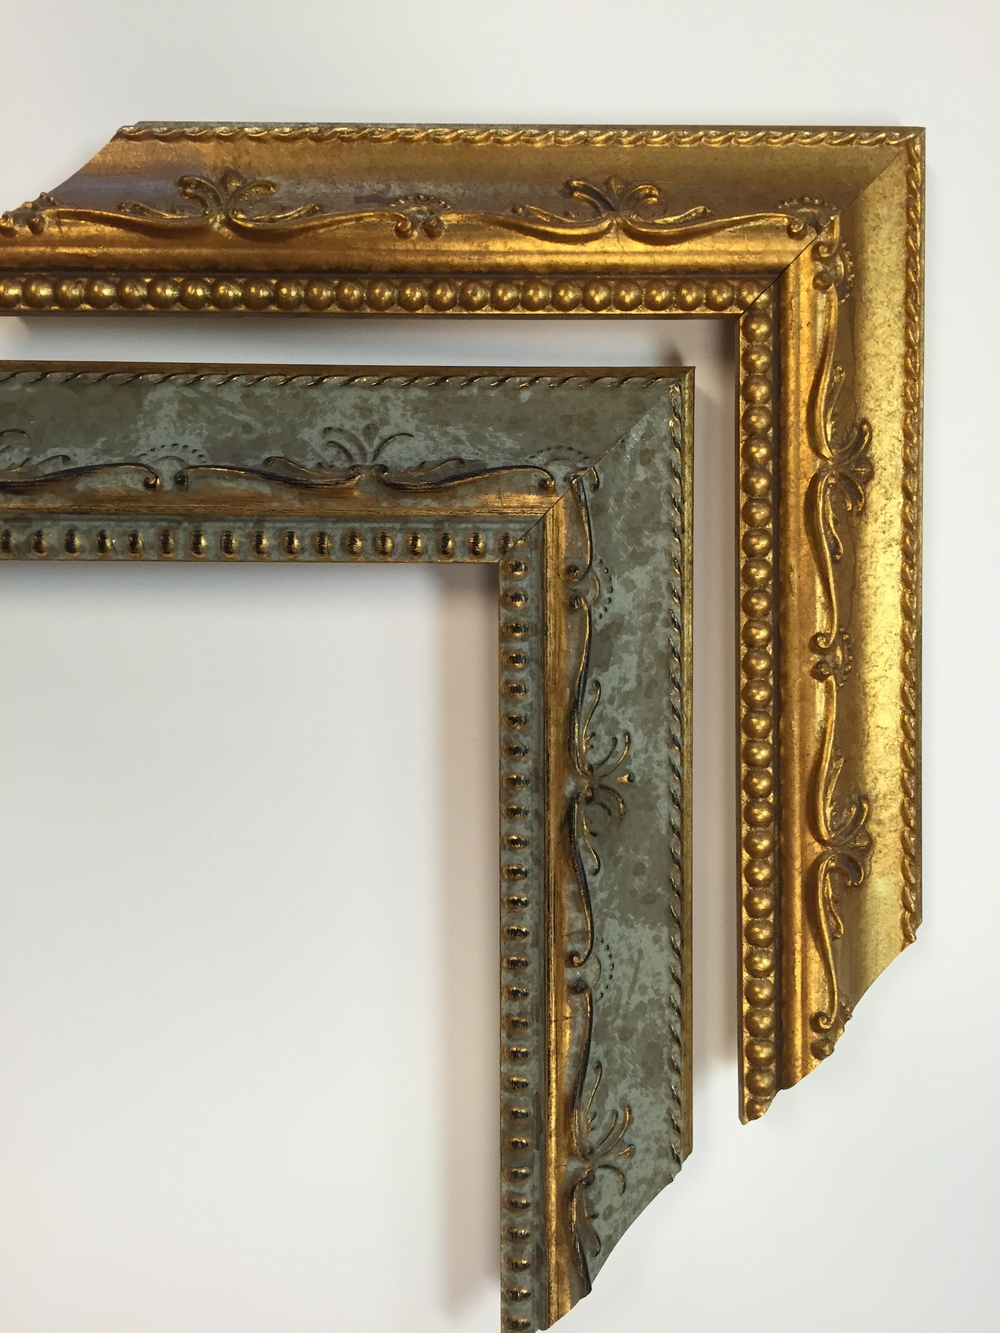 what to do if the gold frame is discontinued?...